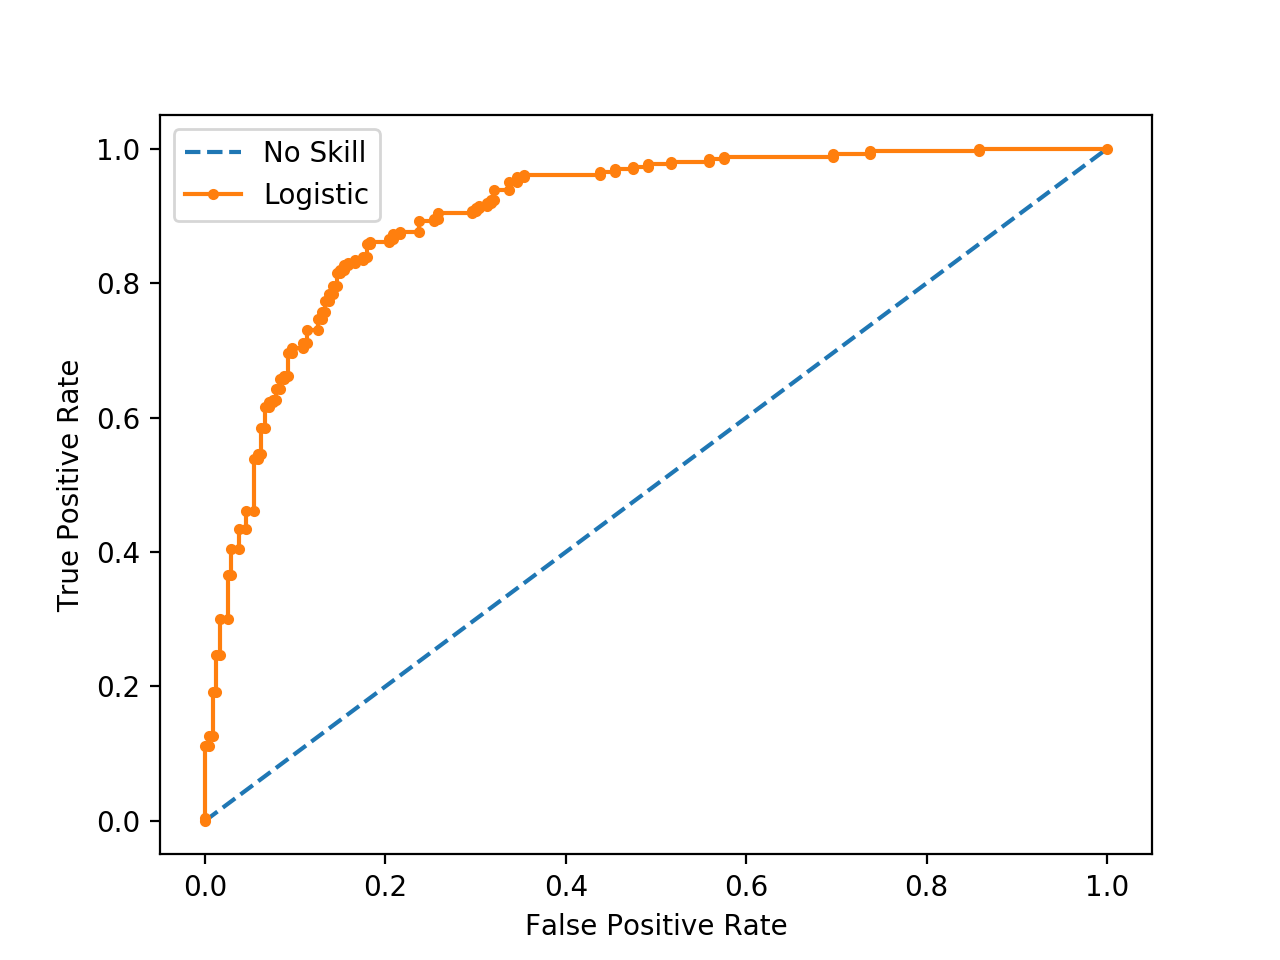 ROC Curve of a Logistic Regression Model and a No Skill Classifier